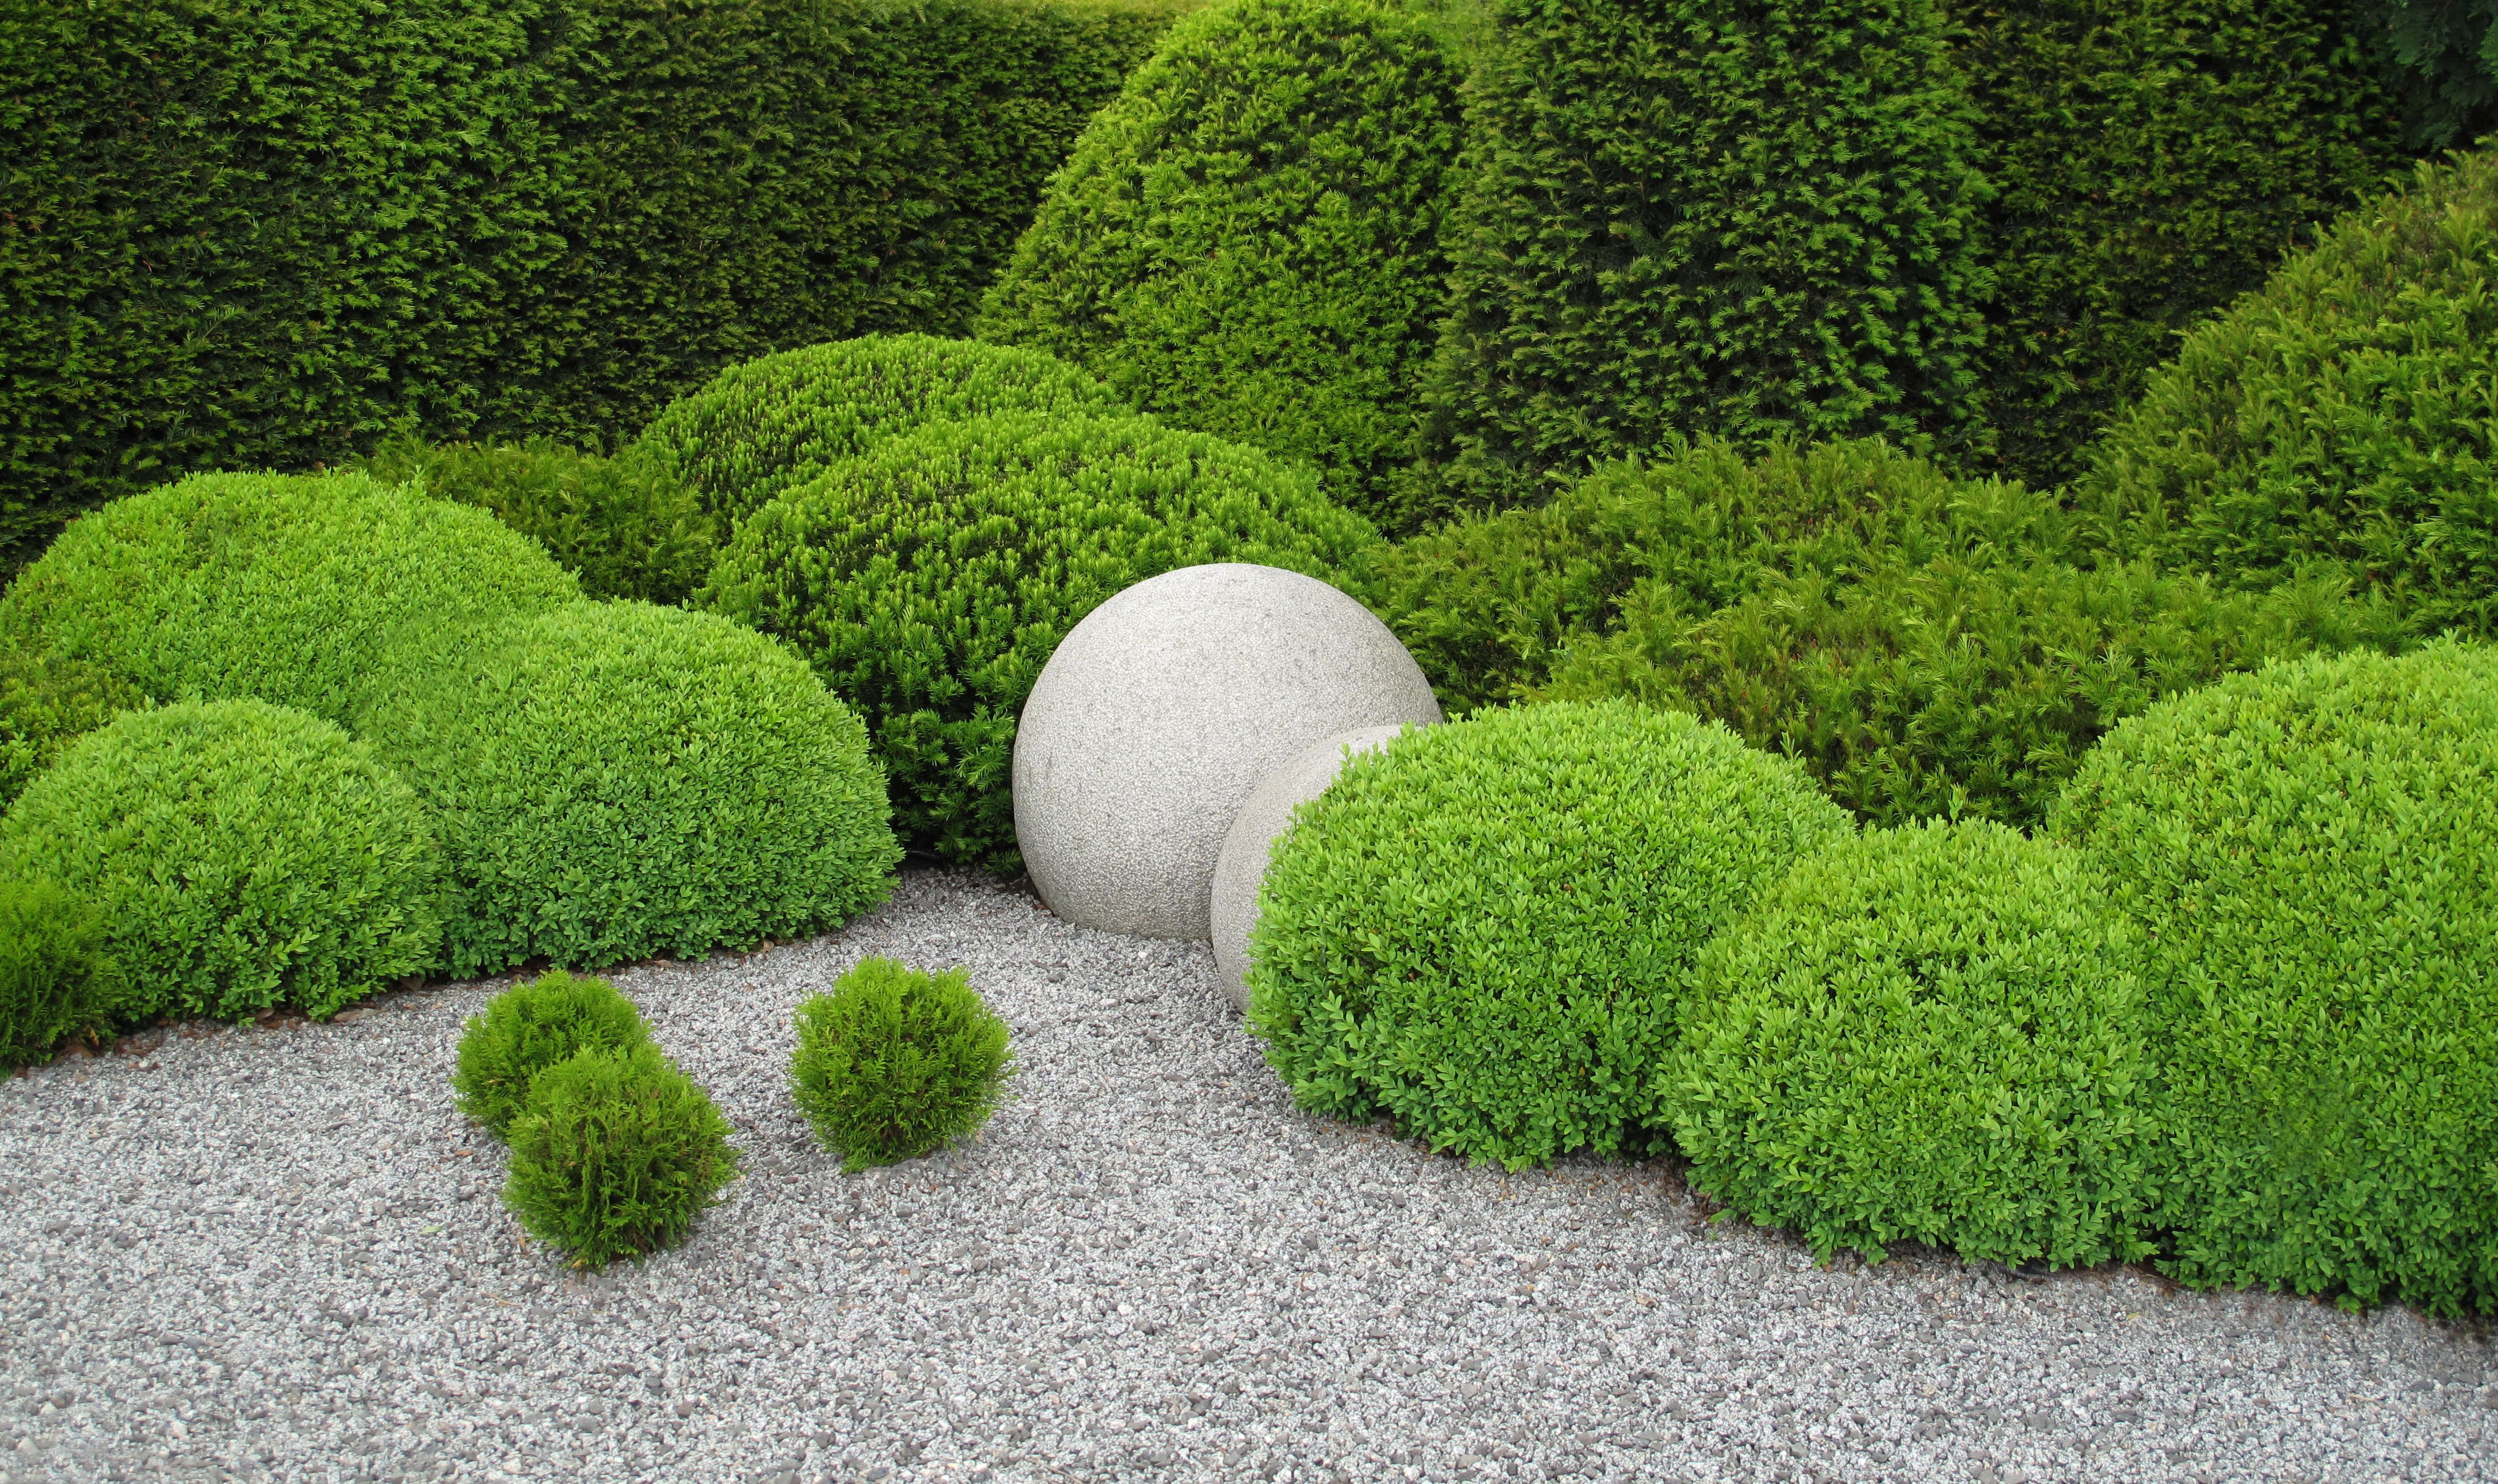 20 Best Boxwood Shrubs to Plant - Boxwood Bush and Hedge Ideas